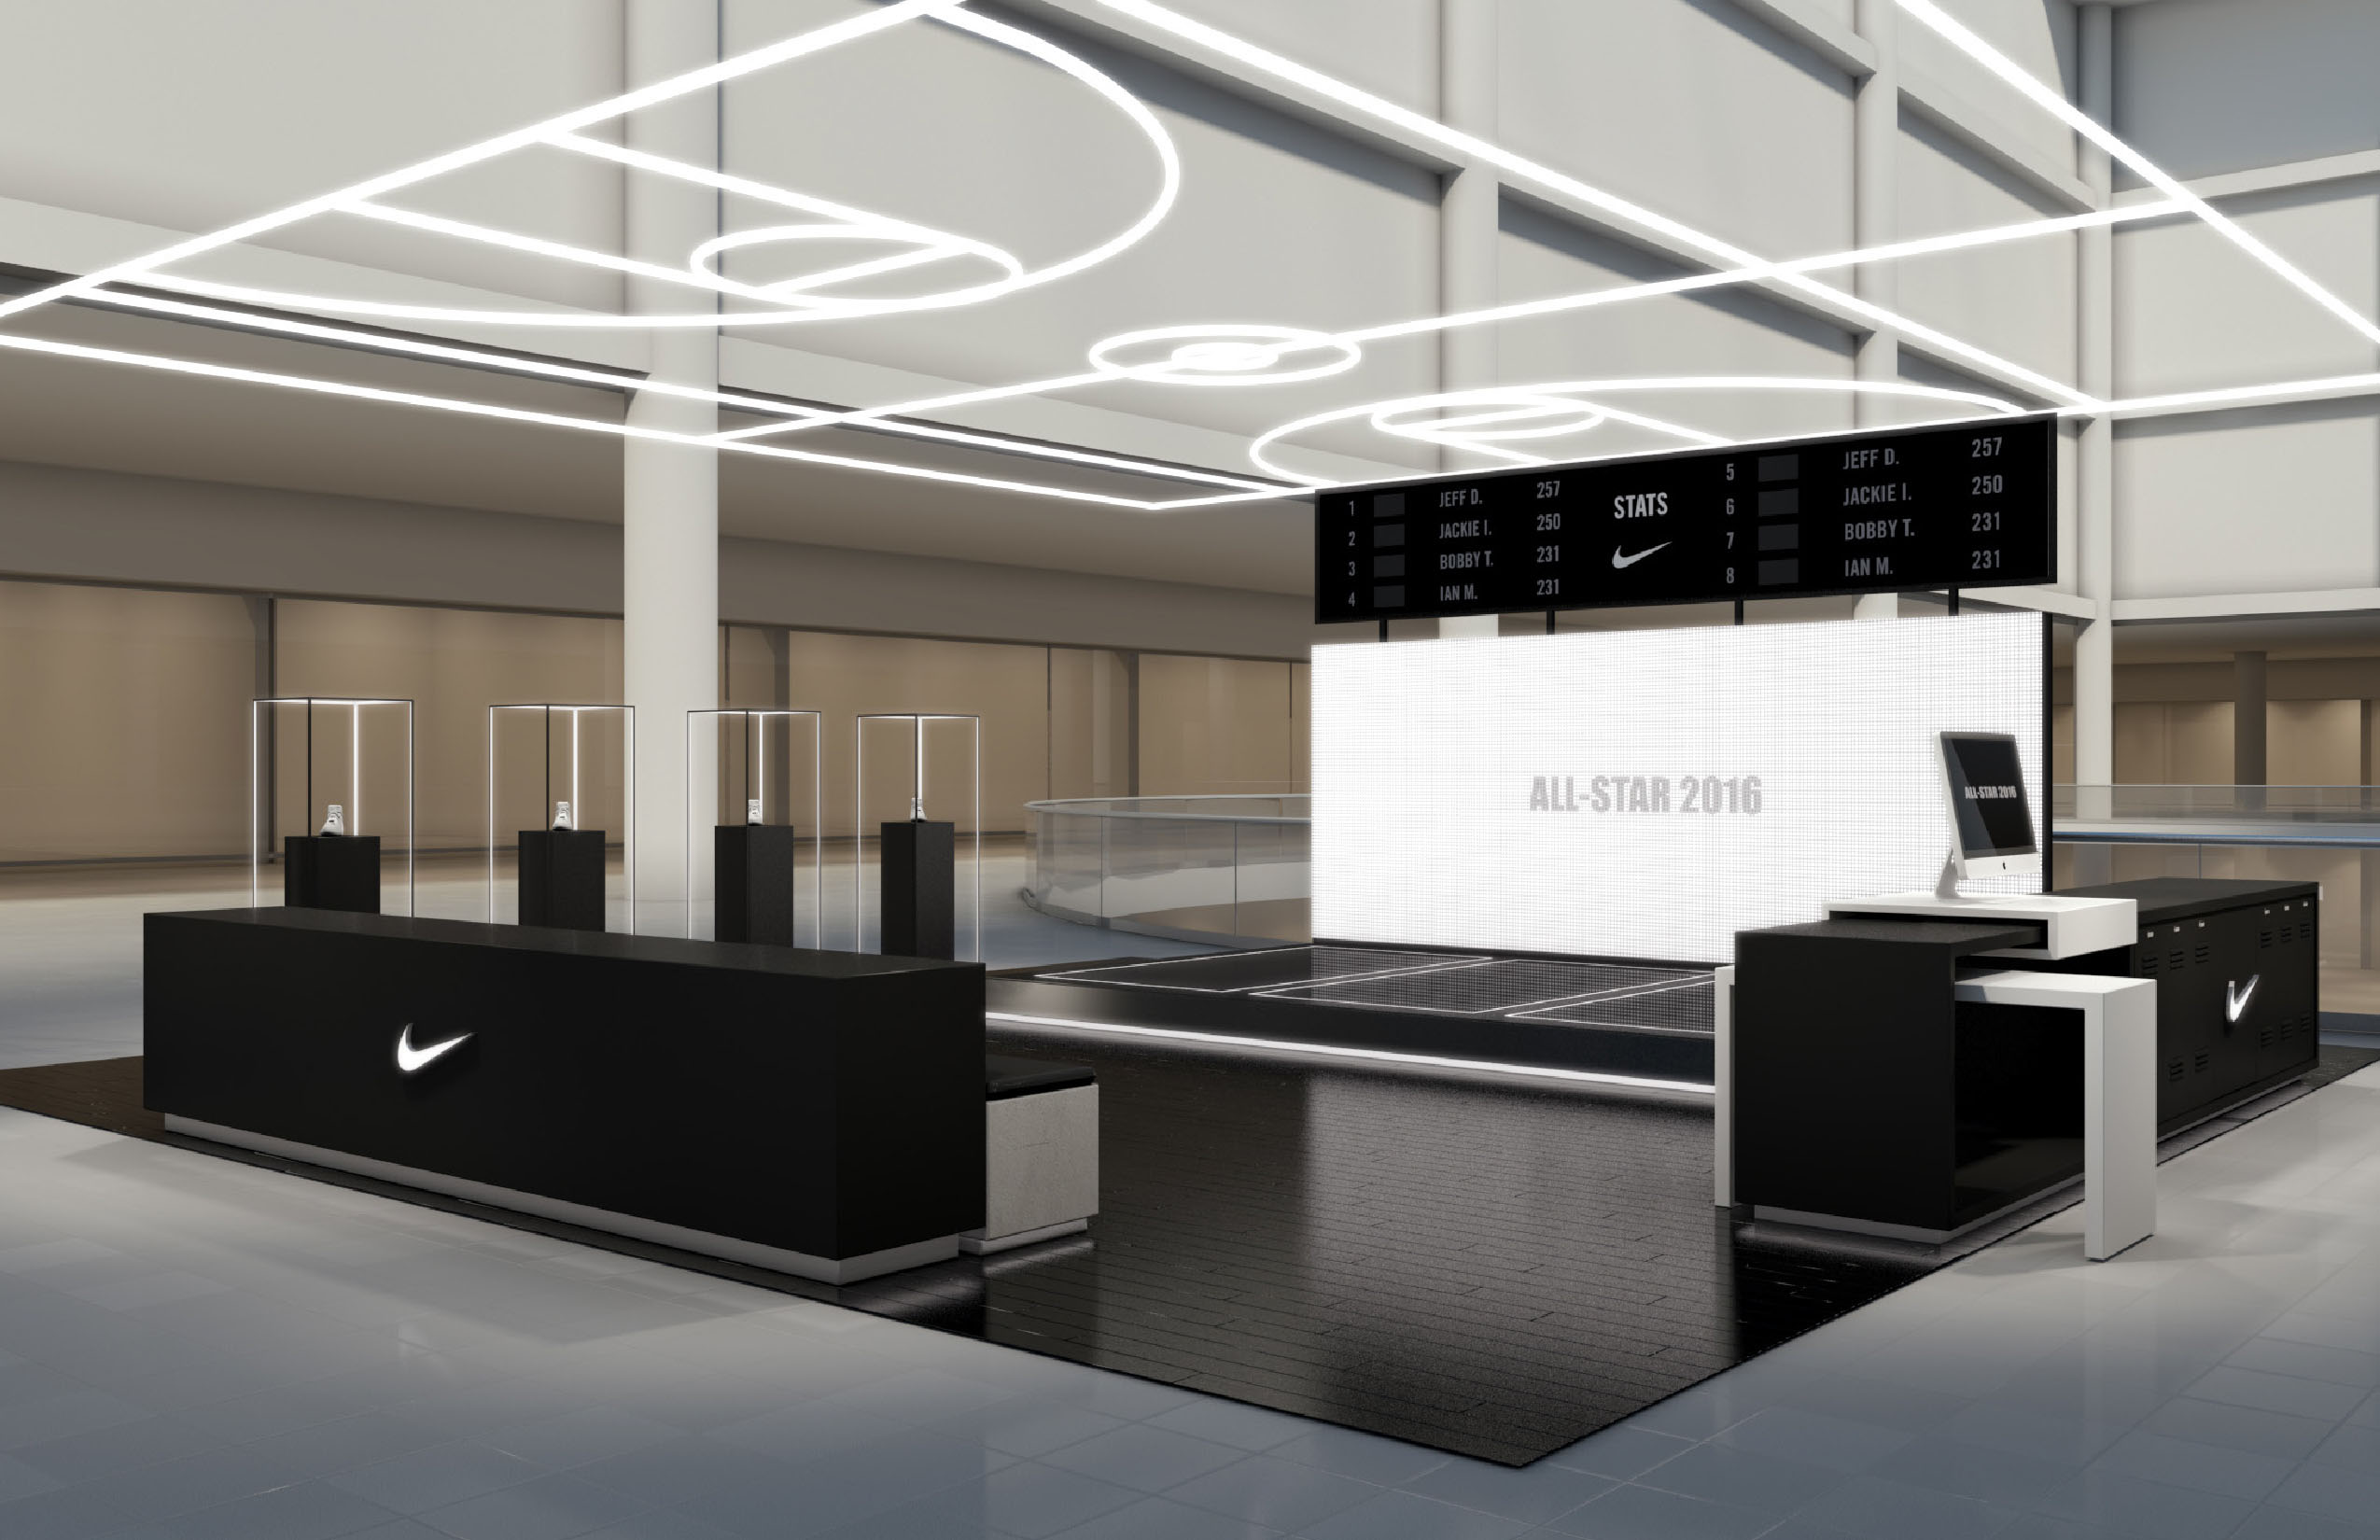 Ryan_Bubion_TEC_Retail_Design_01